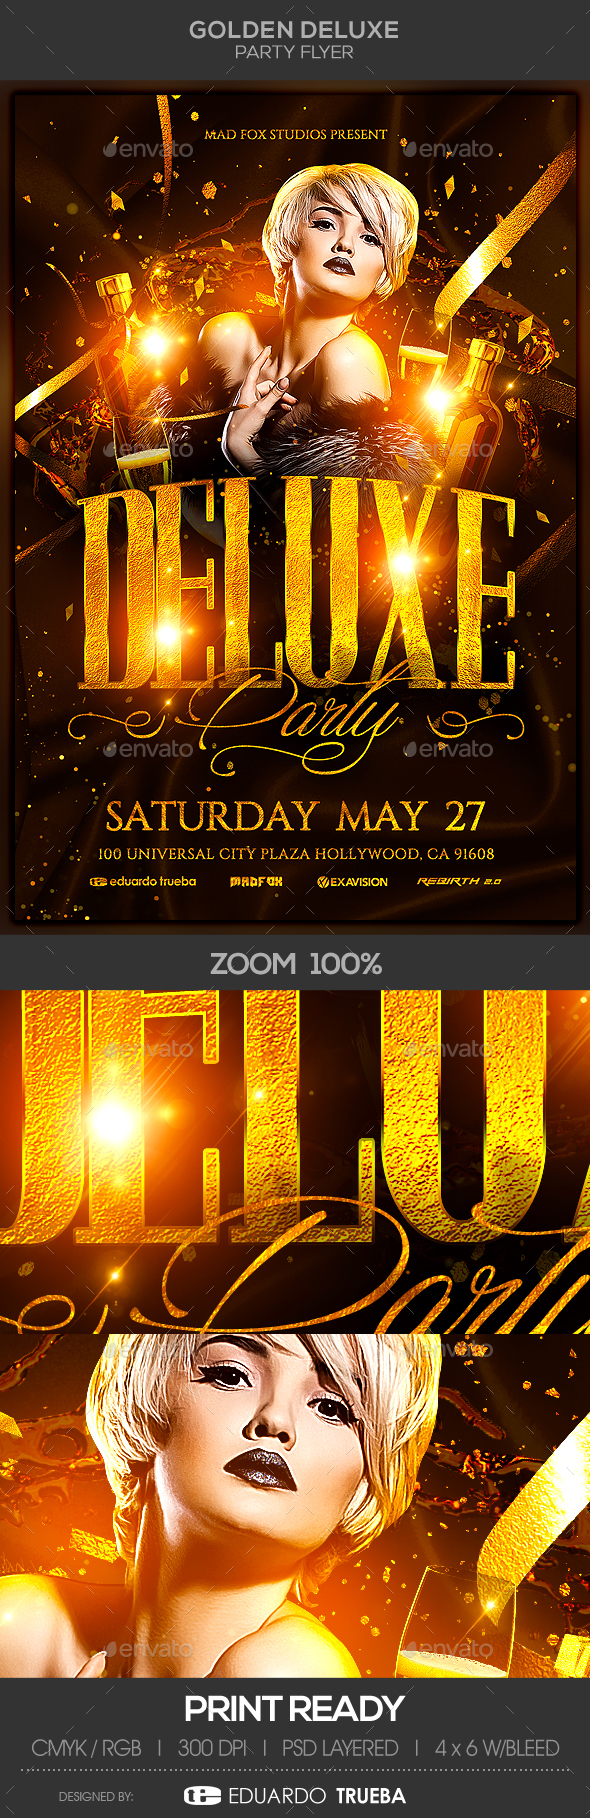 Golden Deluxe Party Flyer - Clubs & Parties Events